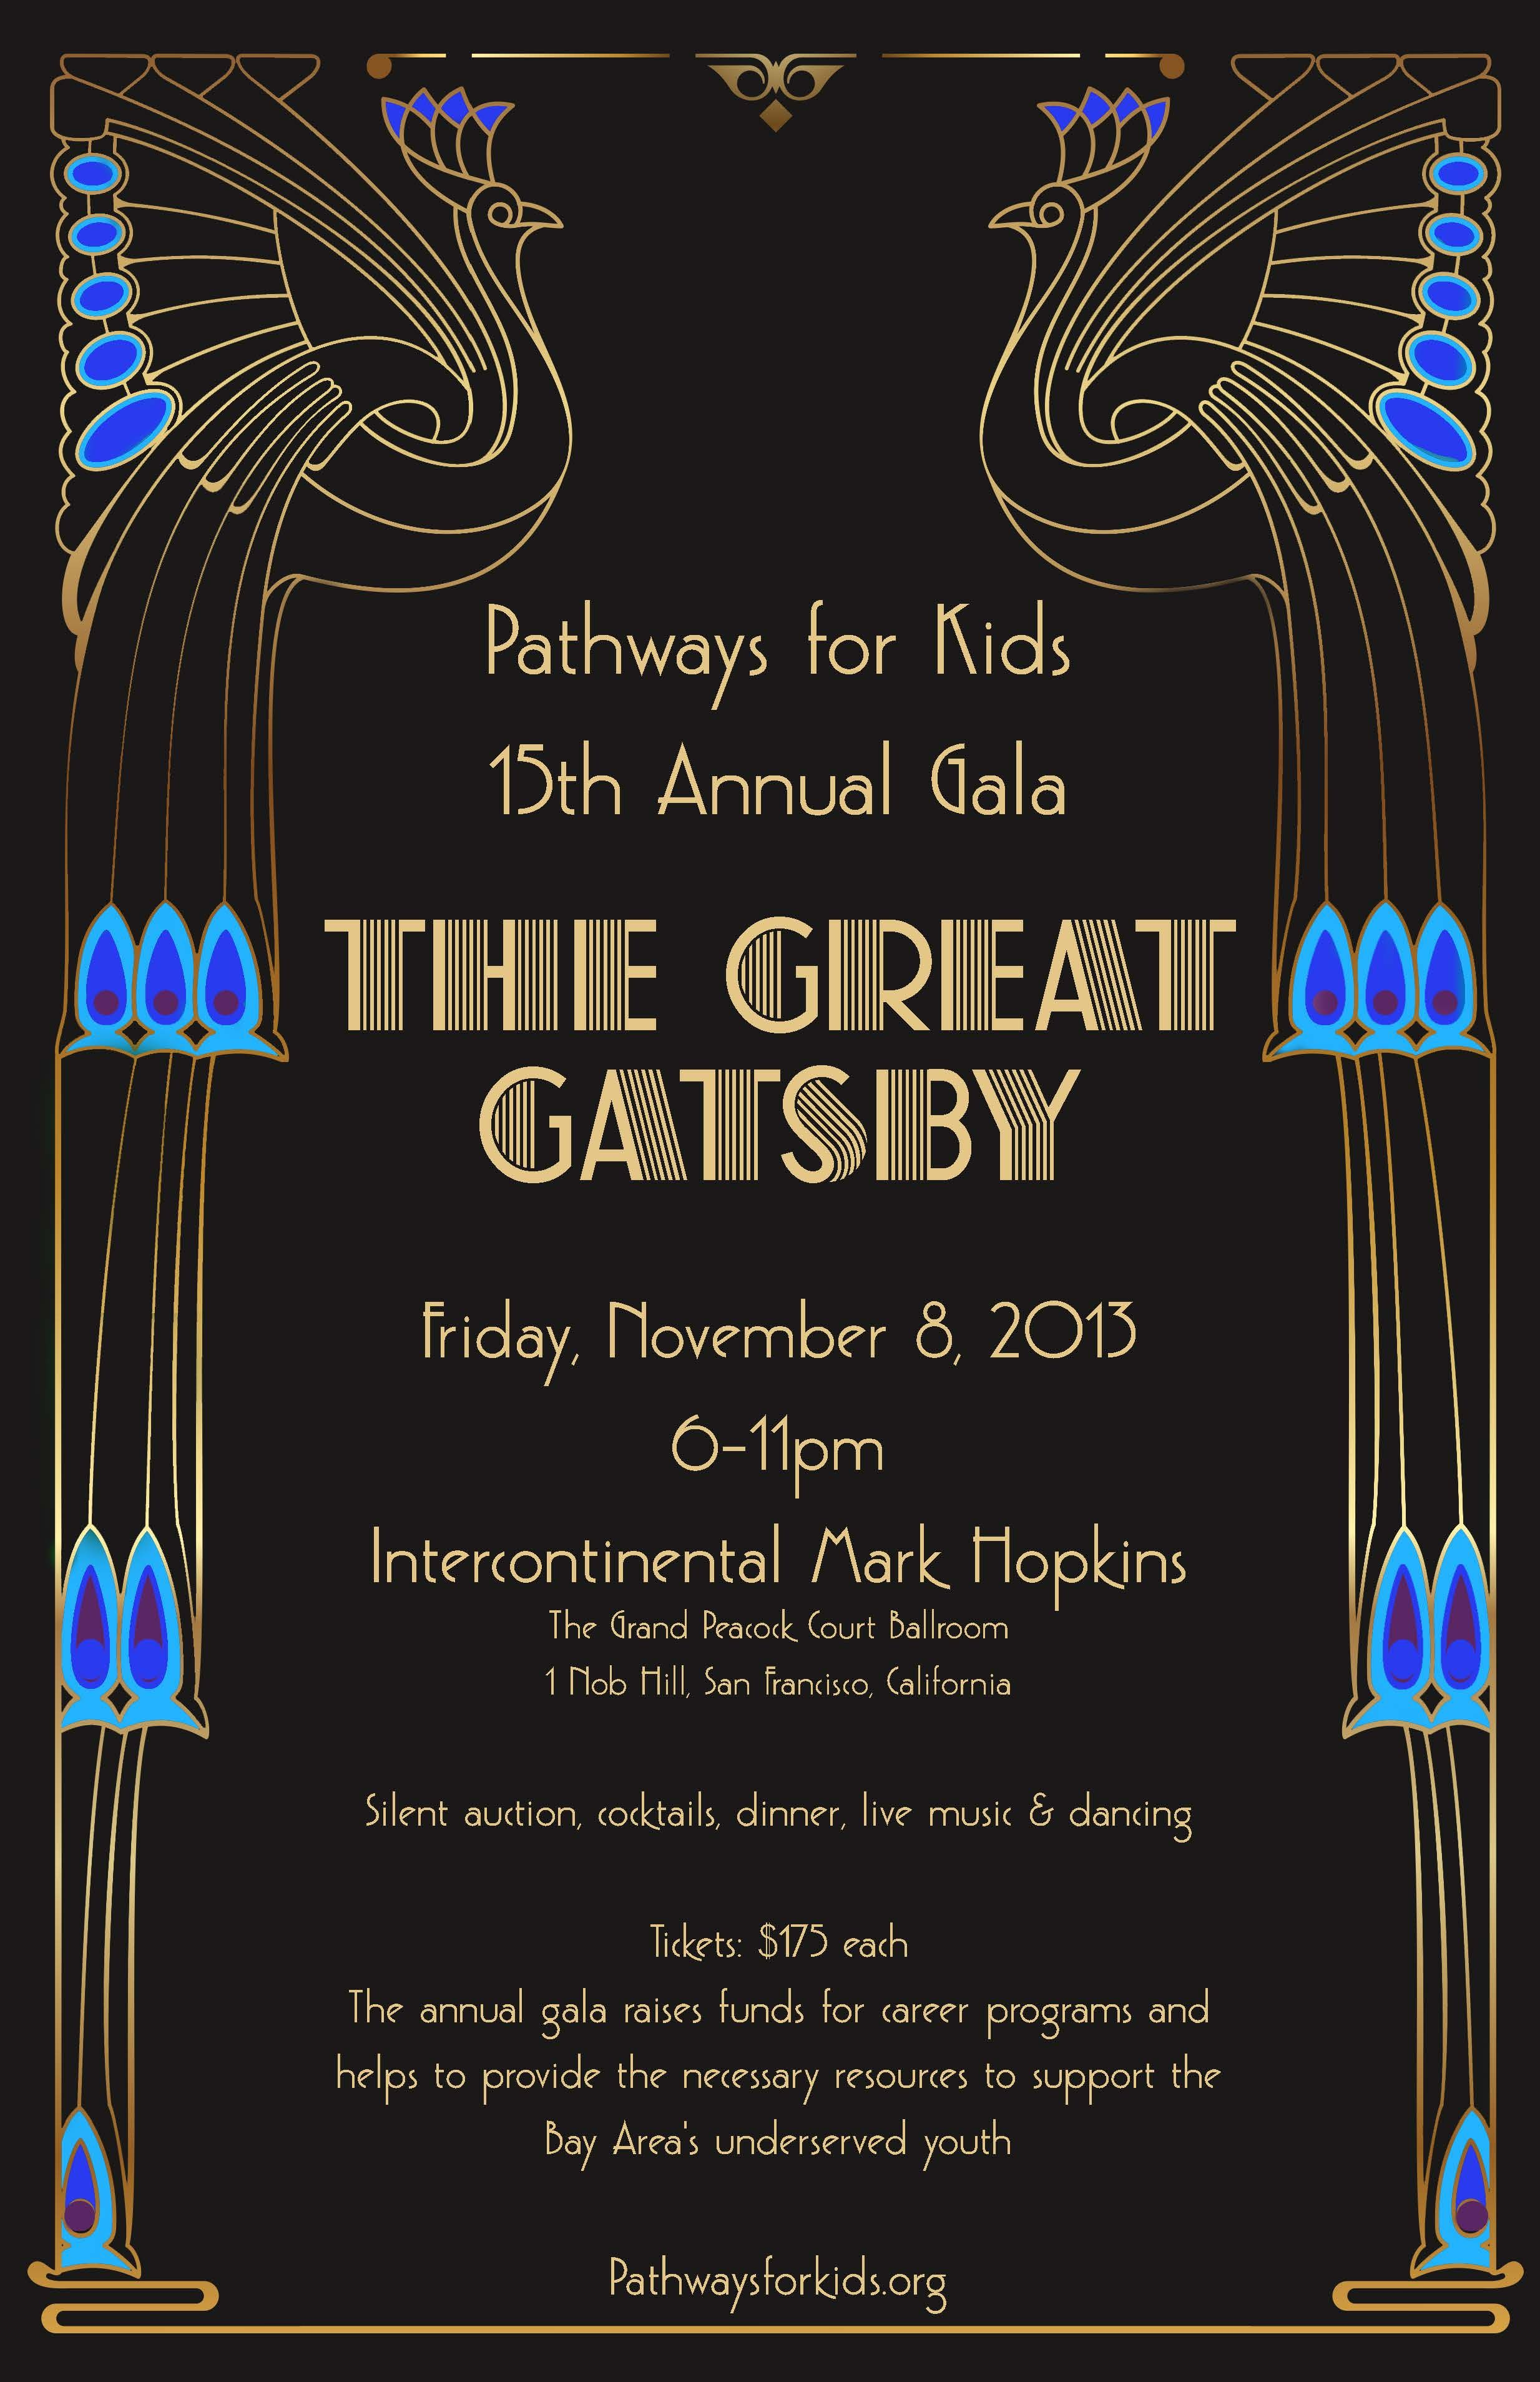 pathways for kids 15th annual gala quotthe great gatsby